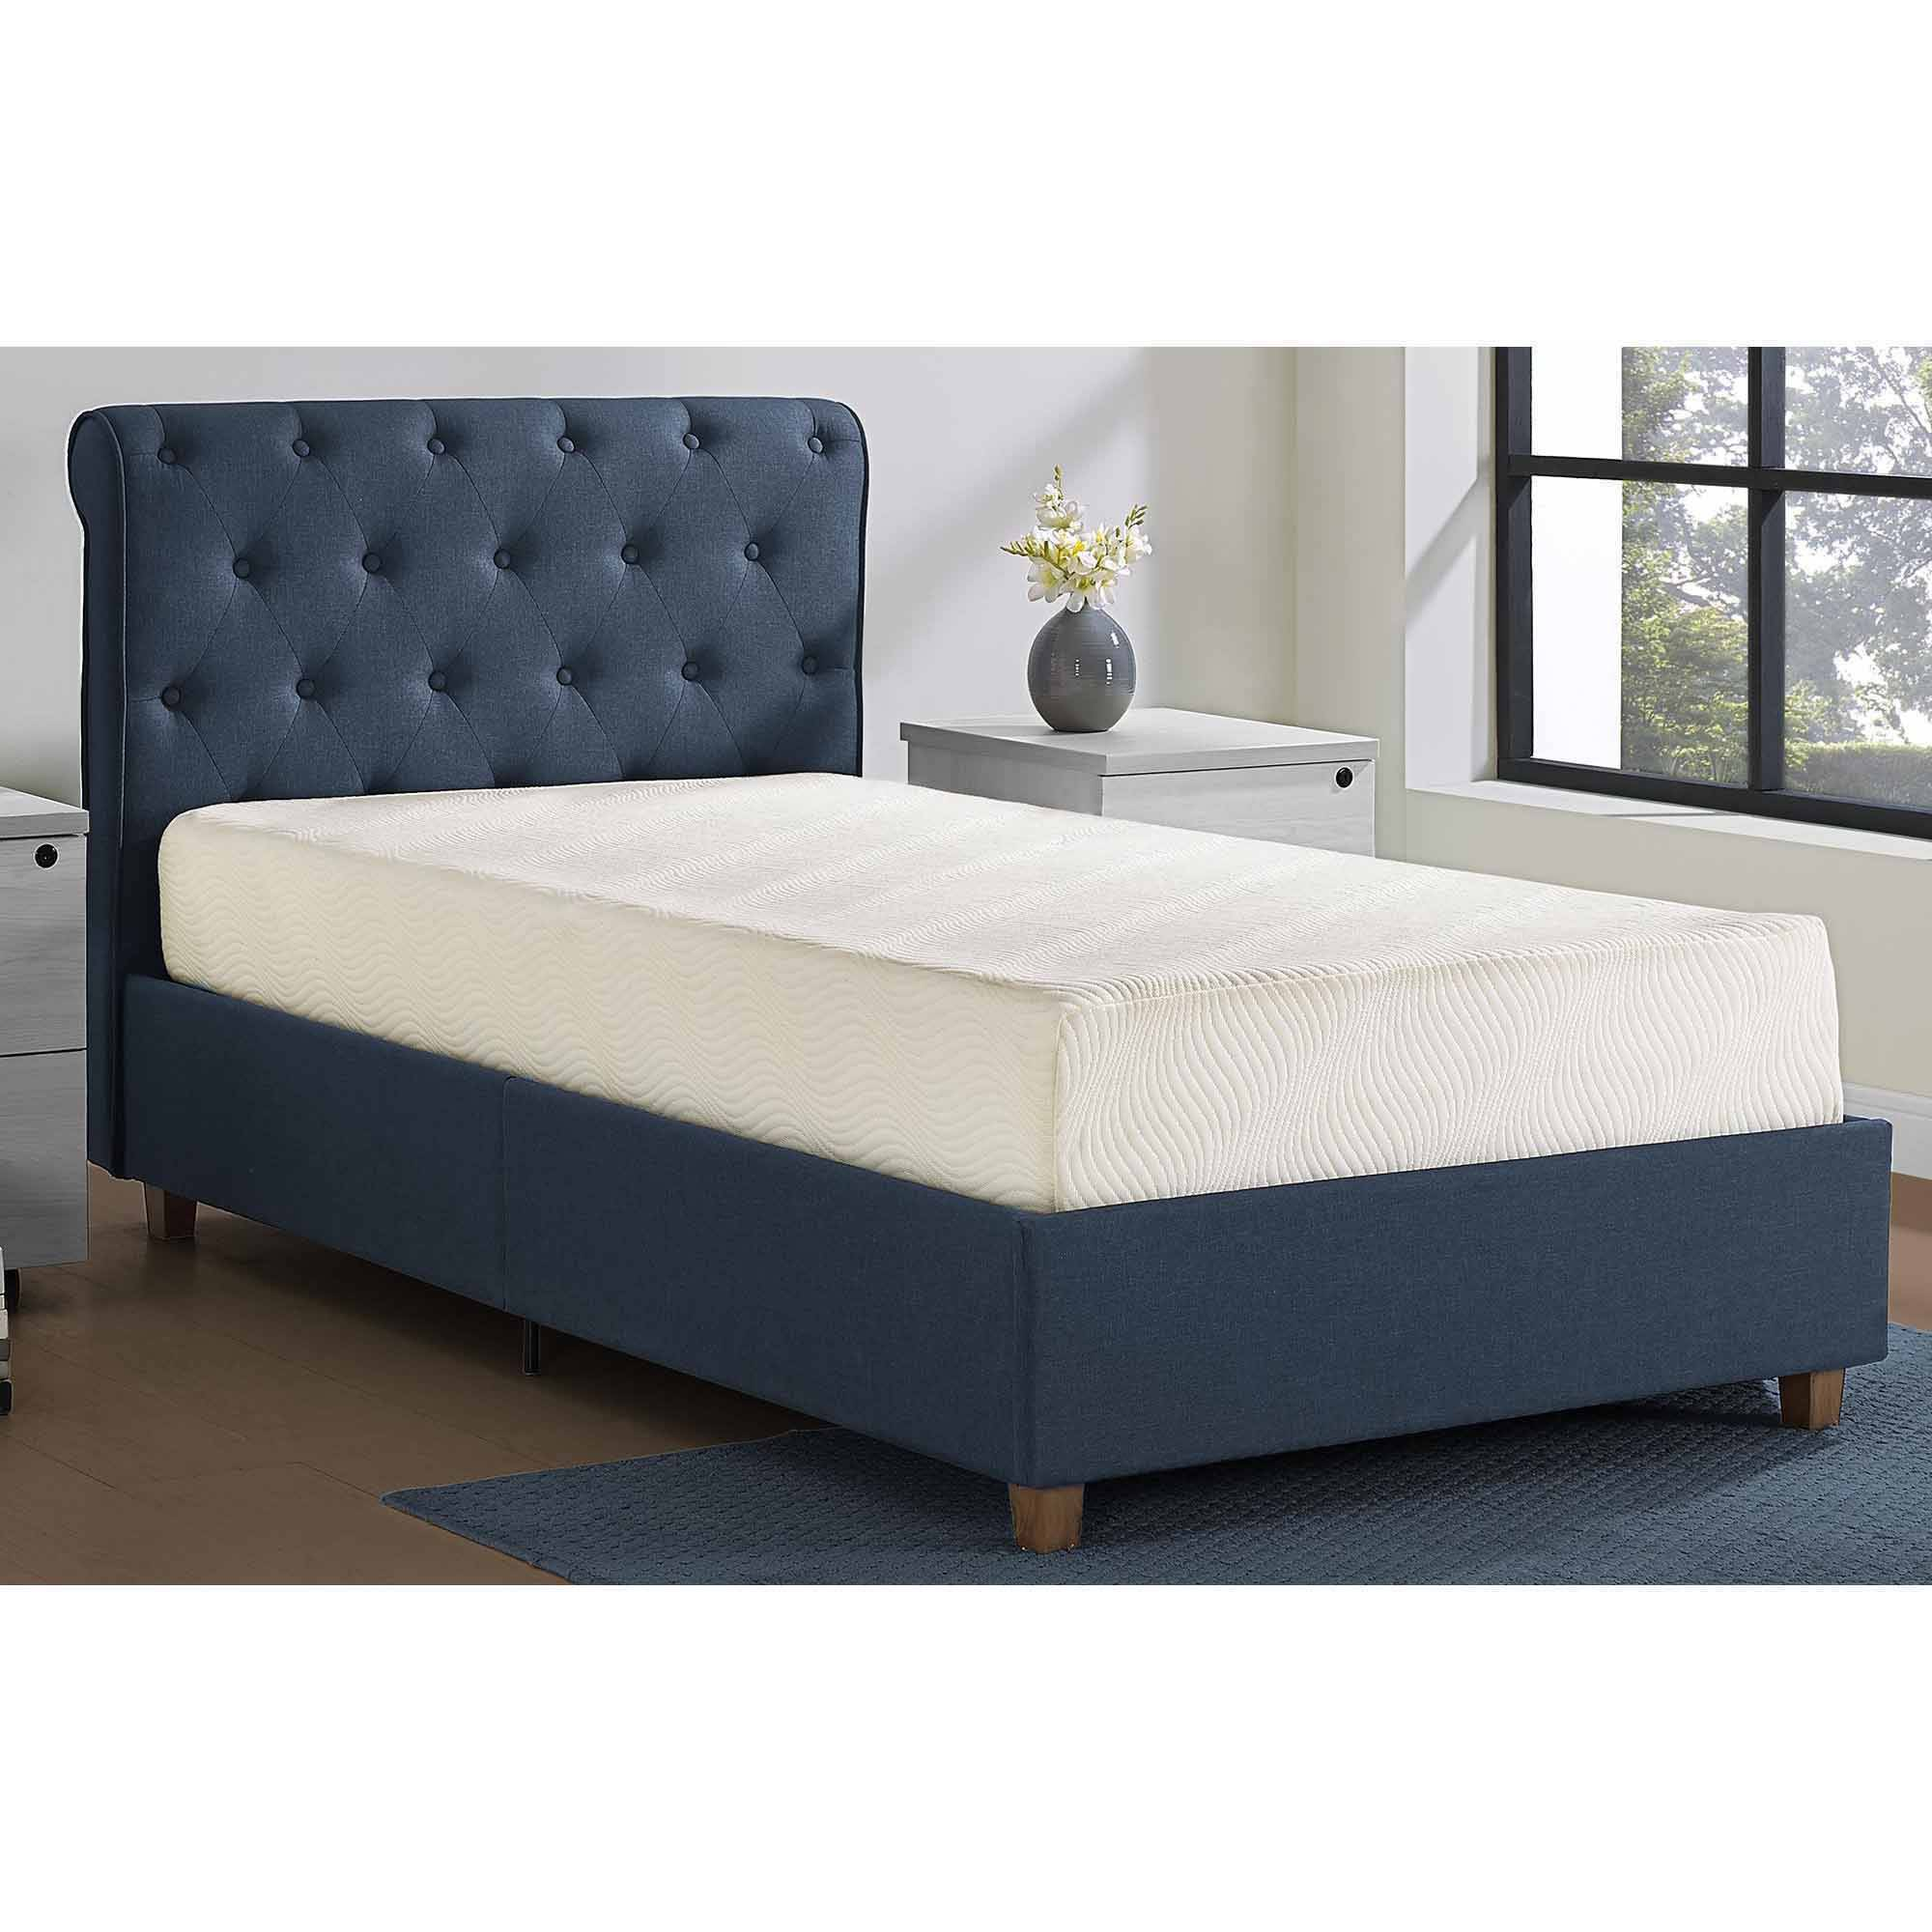 mattress deals near me. mattress deals near me t